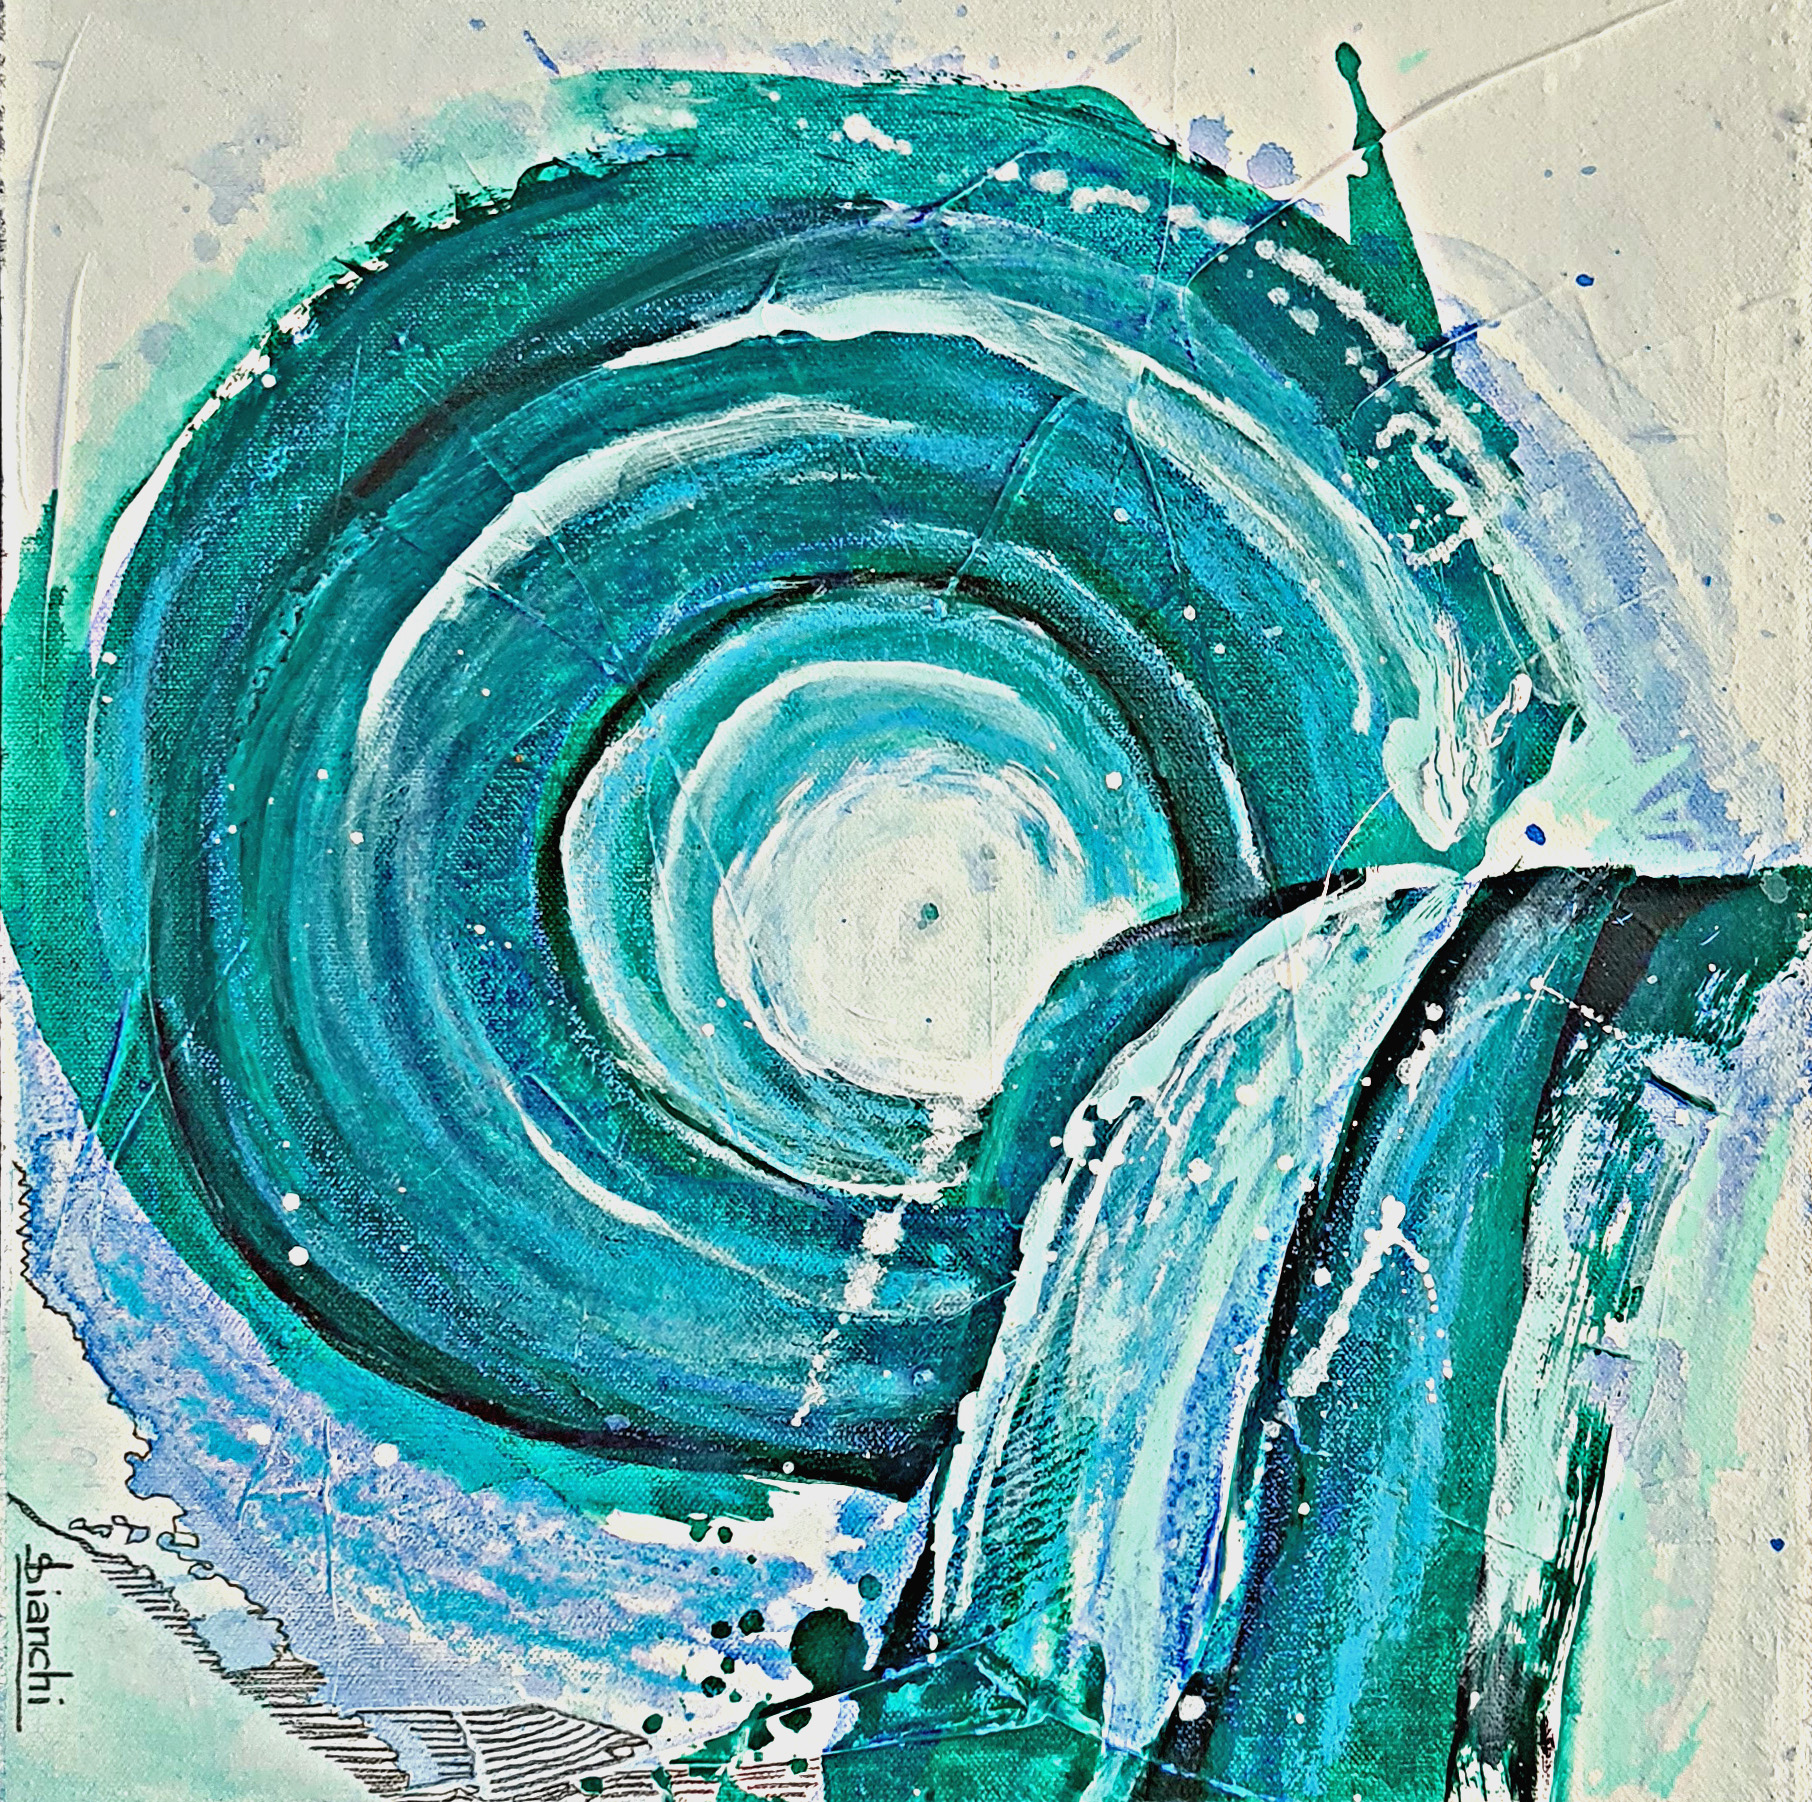 The Wave Study